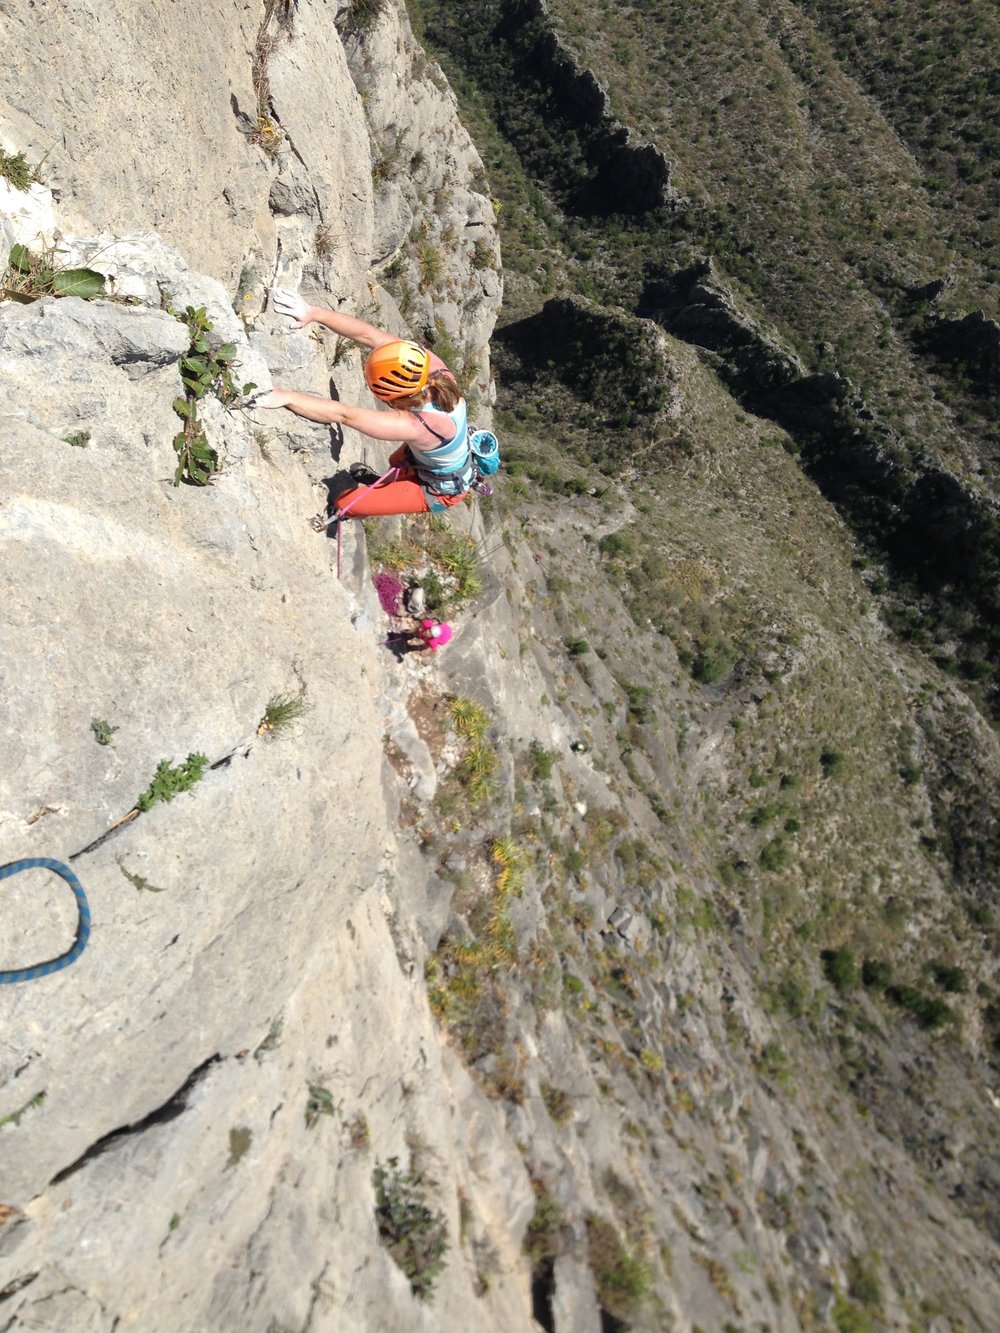 Jewell Lund and I Climbing Time Wave Zero. Or Microwave zero as the locals call it. IT WAS SO HOT.